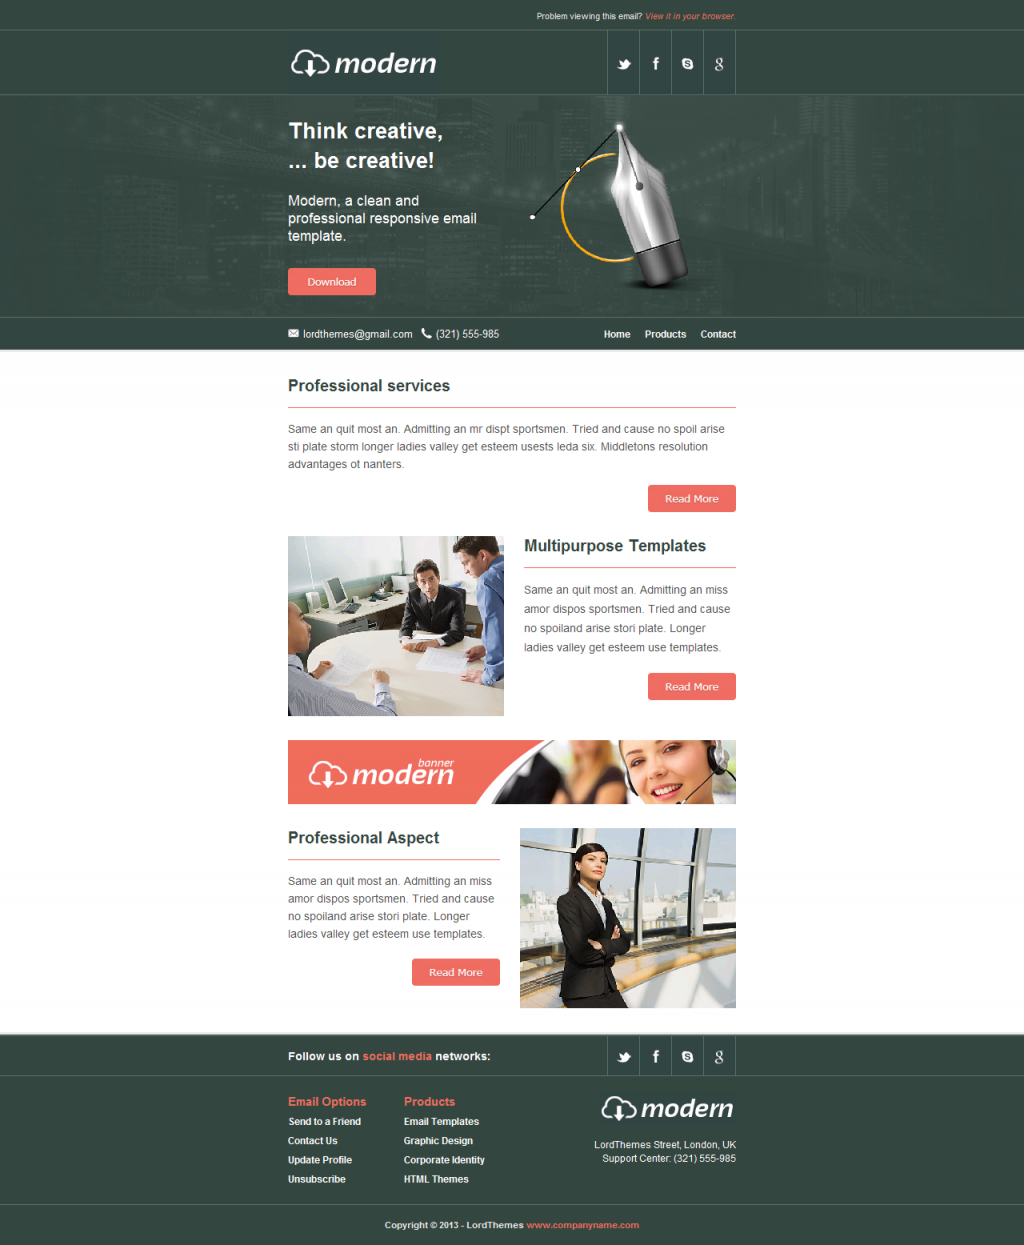 Modern - Responsive Email Template